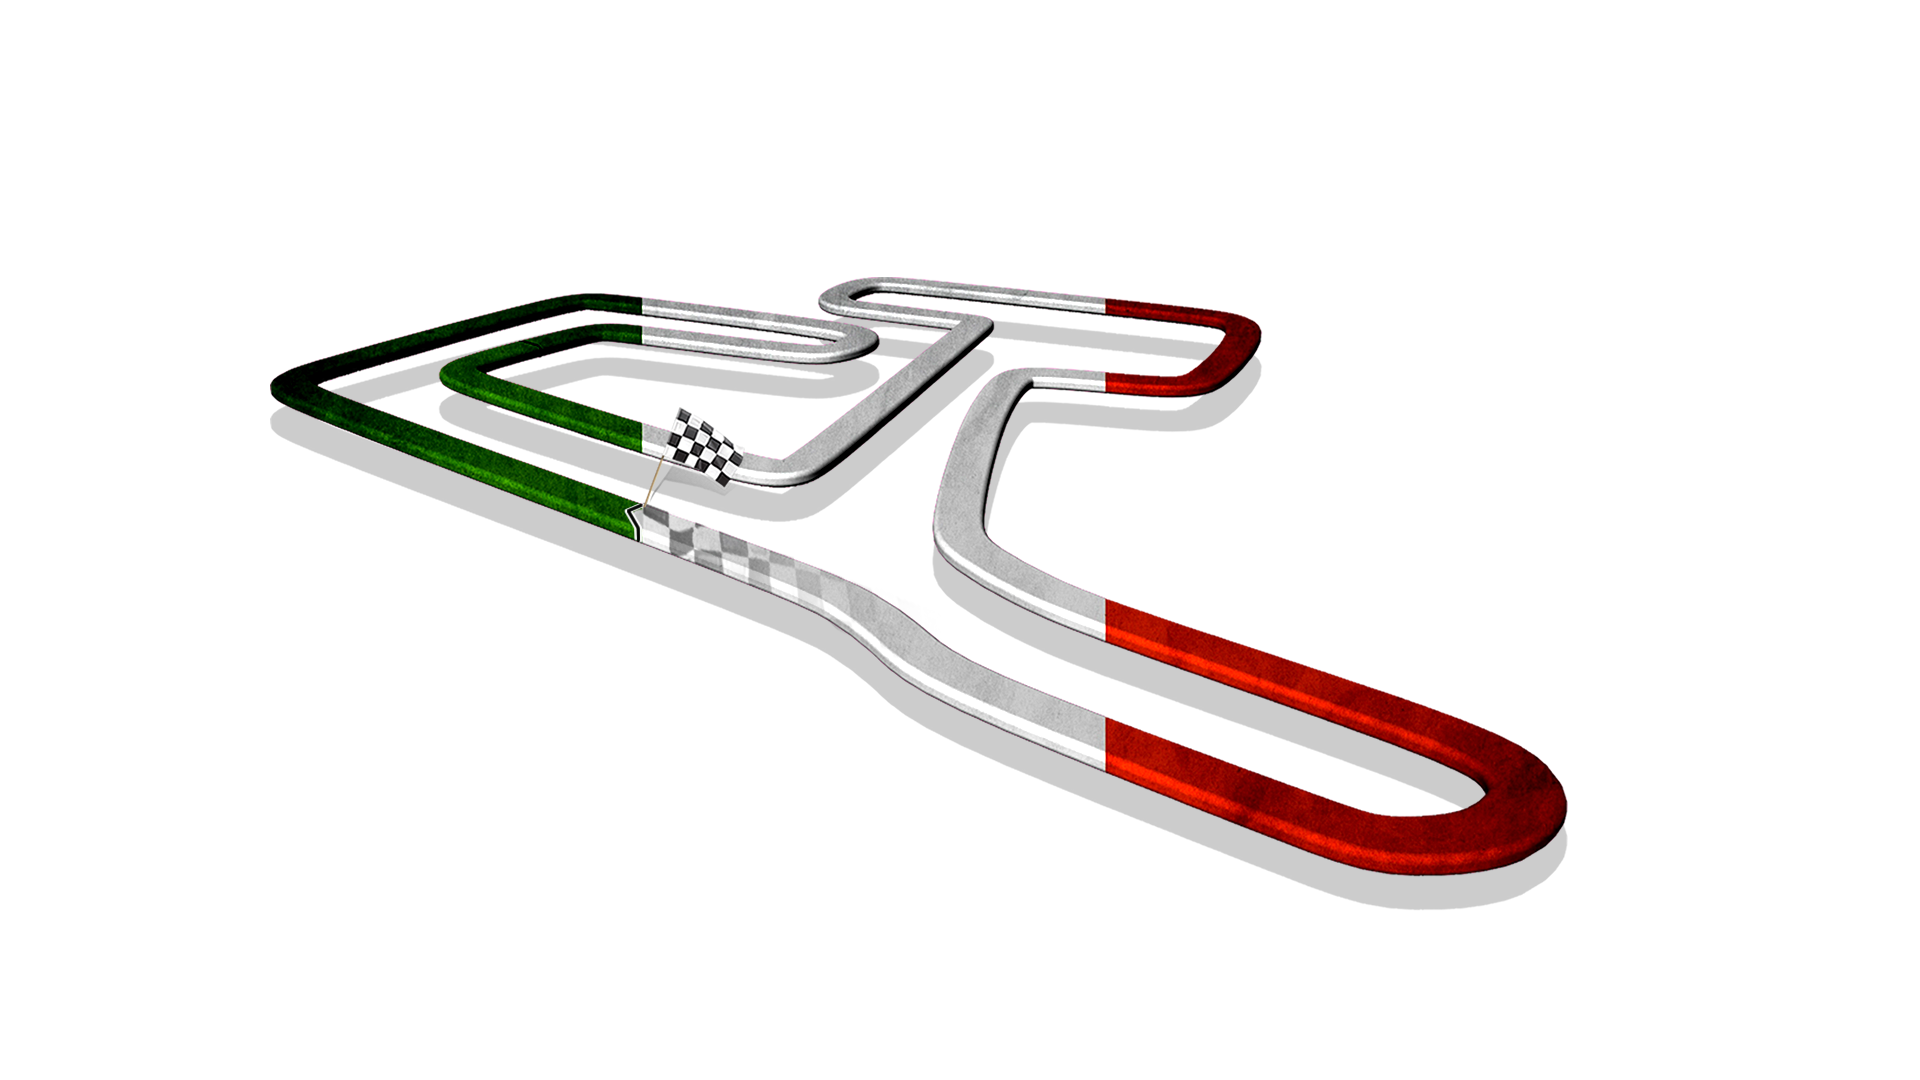 Circuito International Circuit La Conca